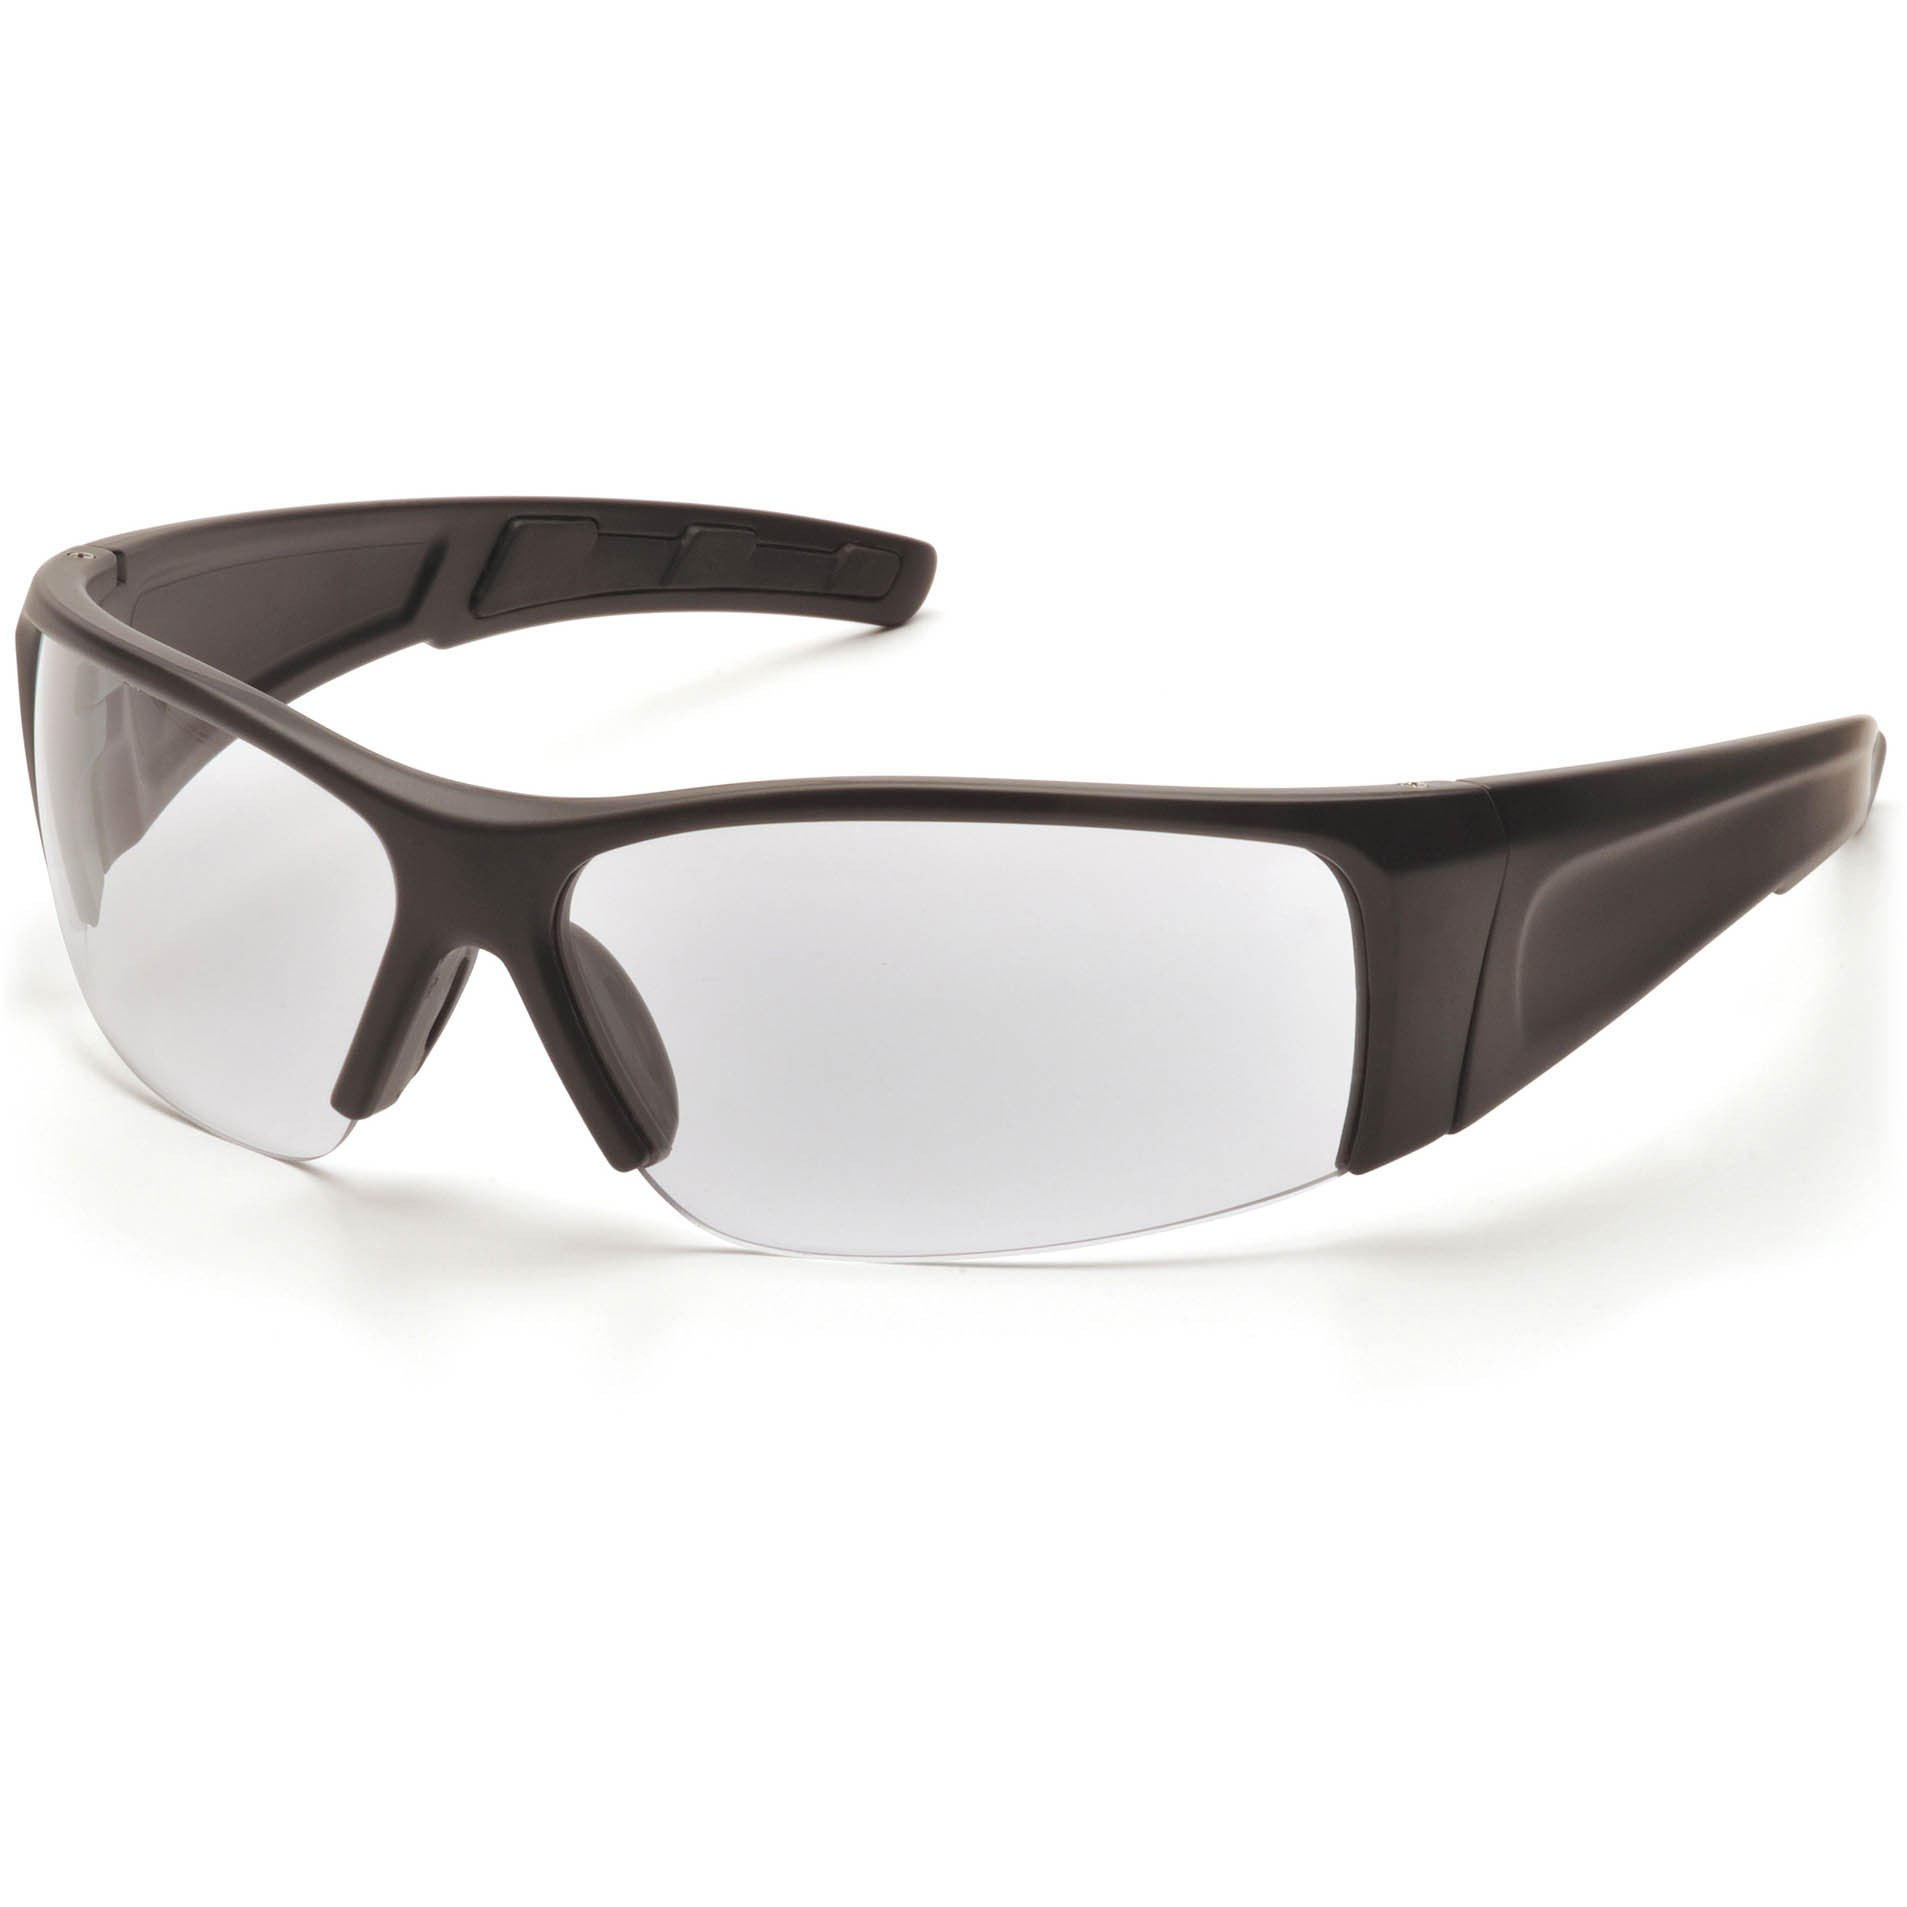 Black Frame Glasses With Clear Lenses : Pyramex PMXTORQ Safety Glasses - Black Frame - Clear Lens ...